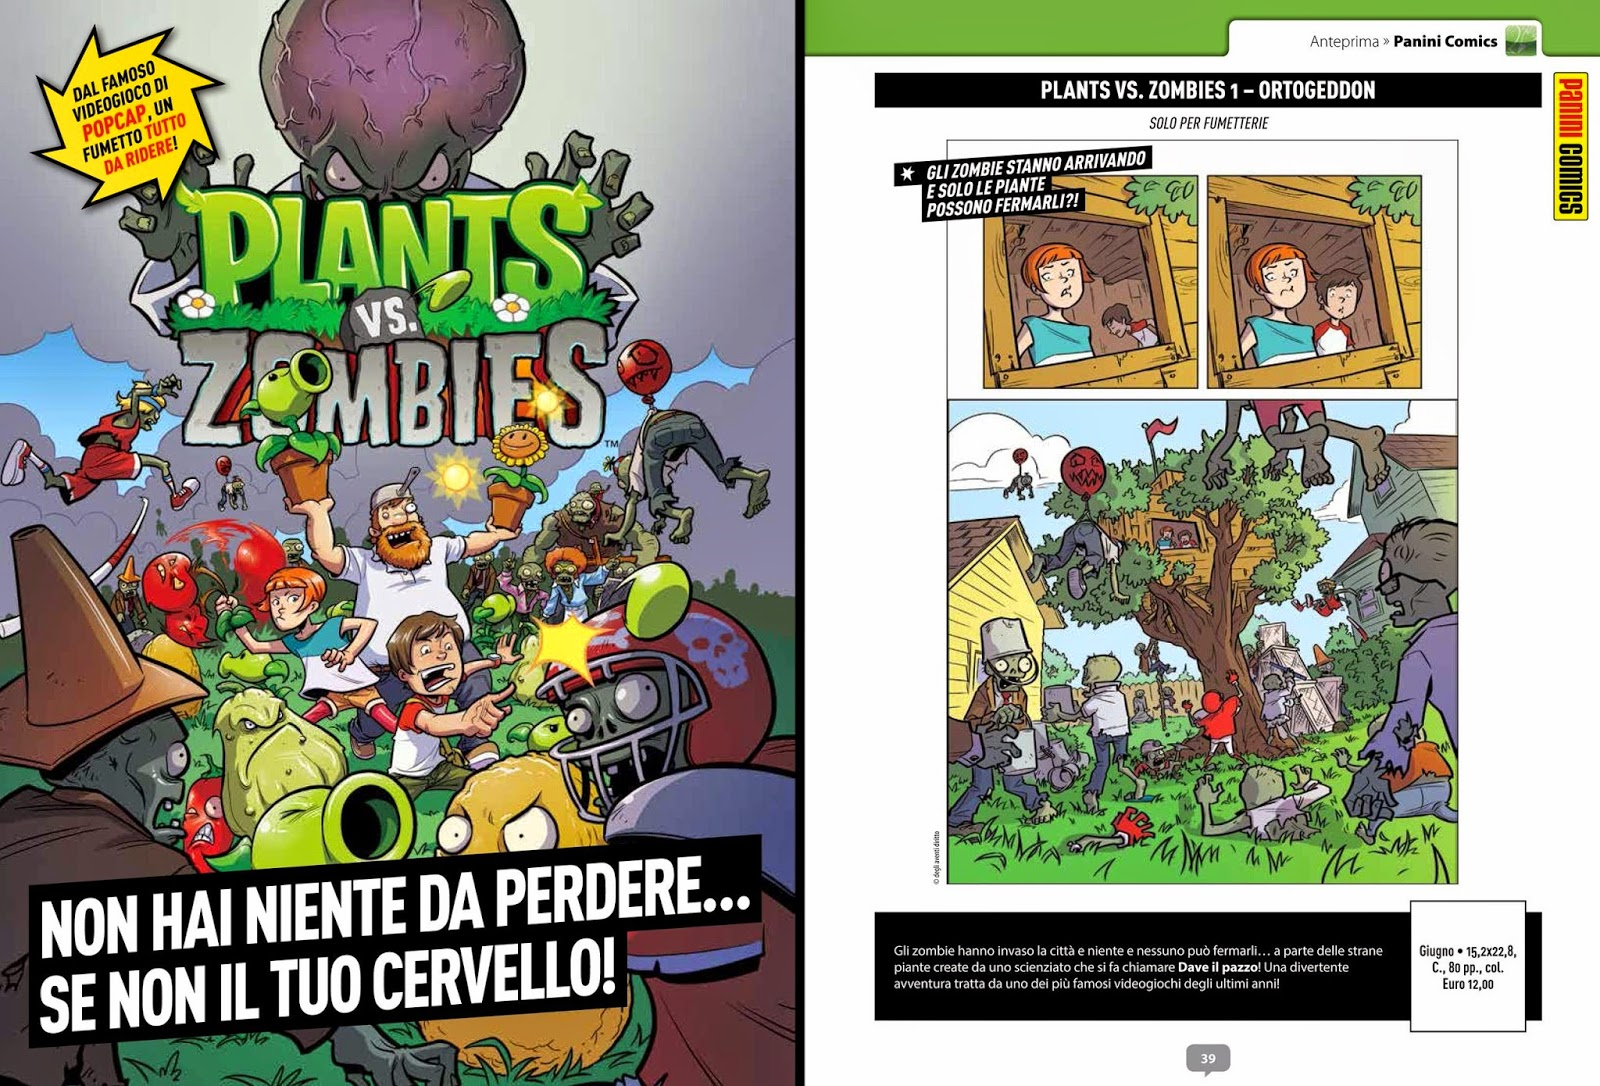 Plants Vs Zombies (Anteprima #280)